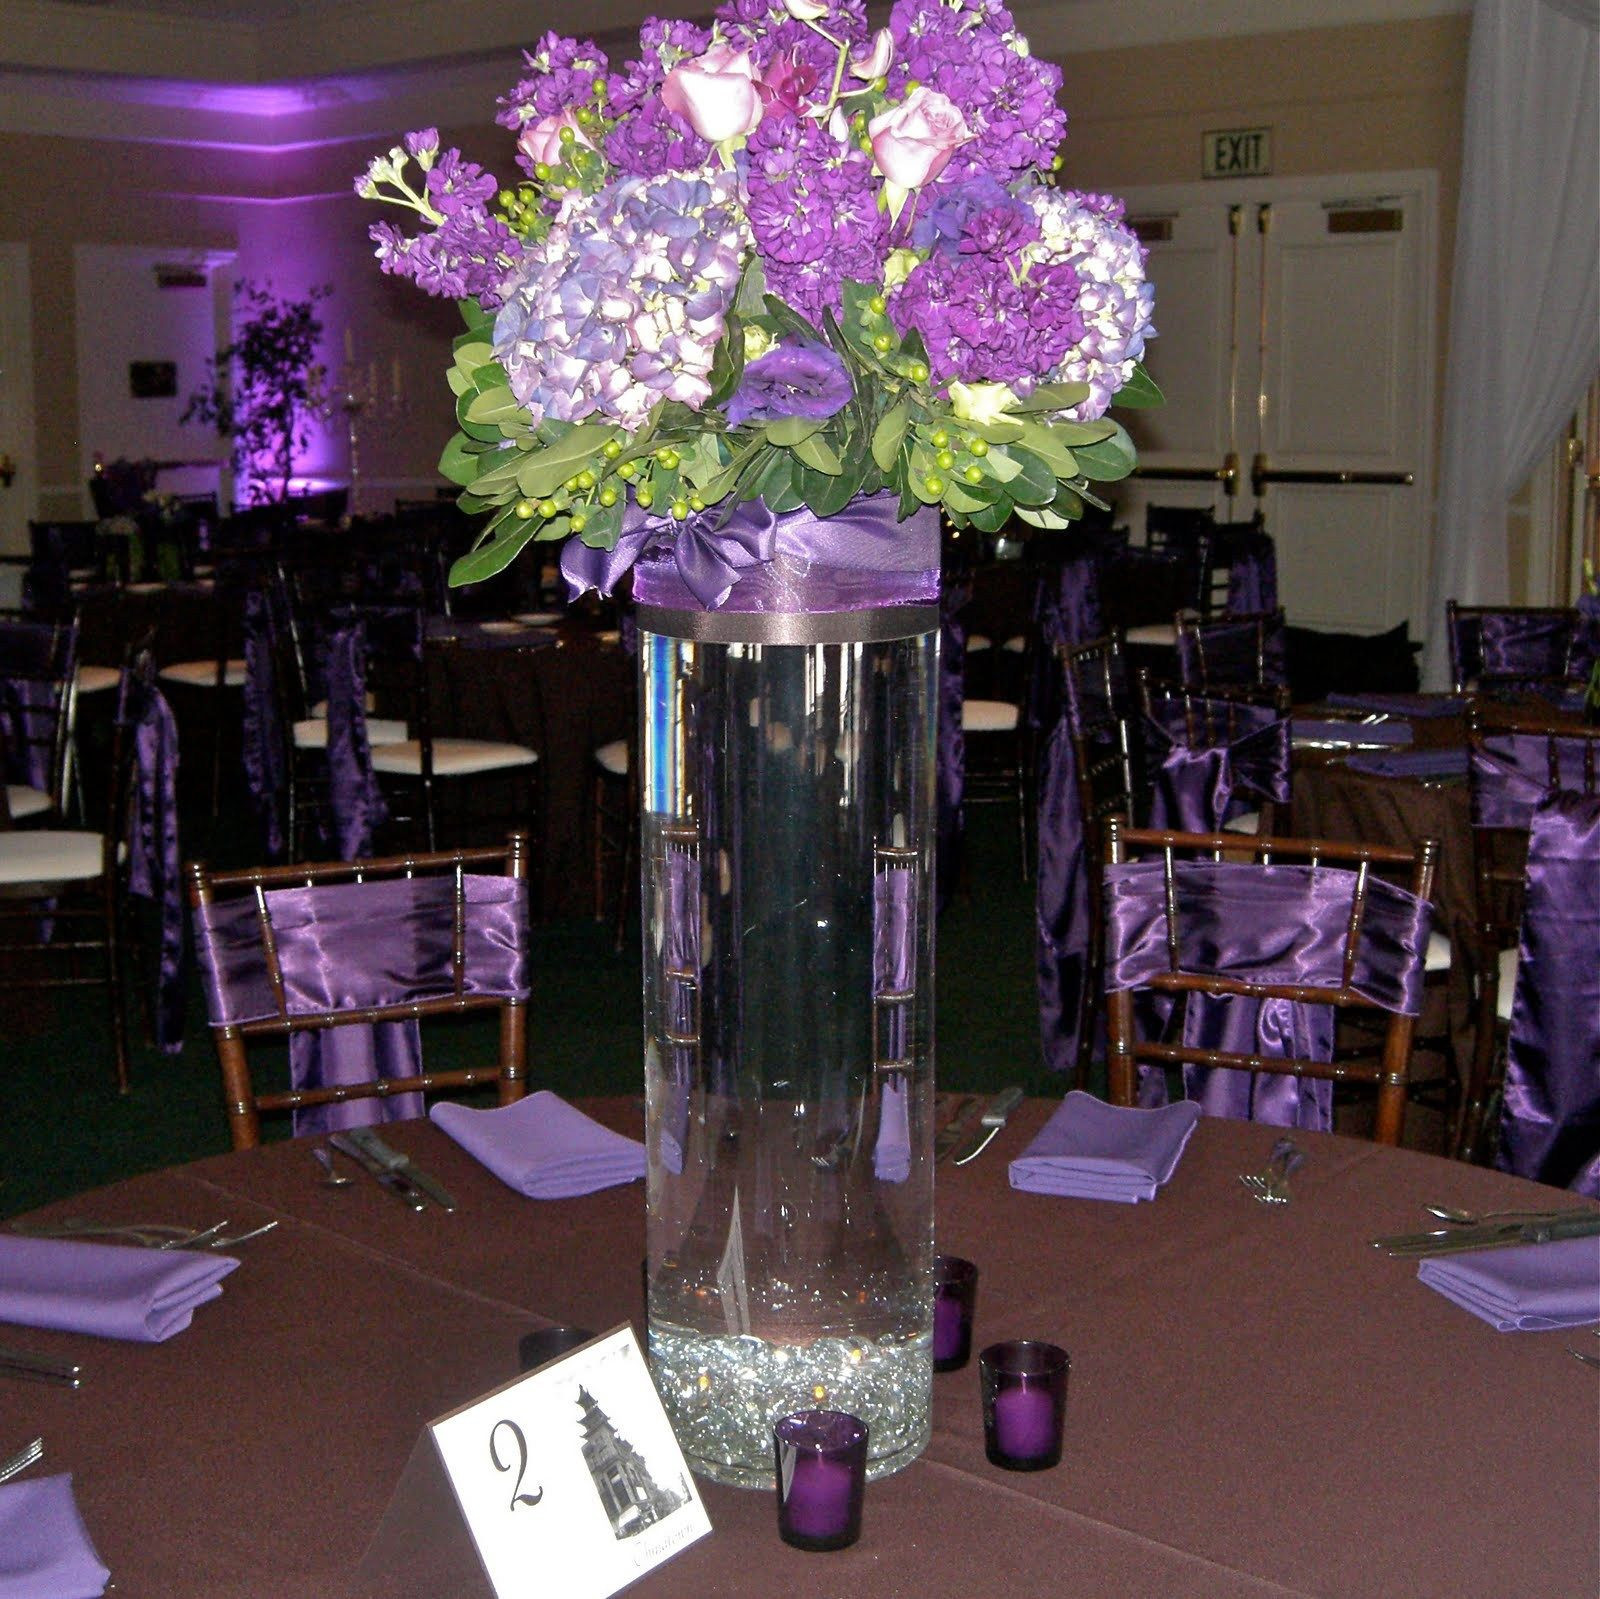 Tall Silver Vases for Wedding Centerpieces Of 23 Tall Cylinder Vases the Weekly World Regarding Bulk Glass Vases for Centerpieces Vase and Cellar Image Avorcor